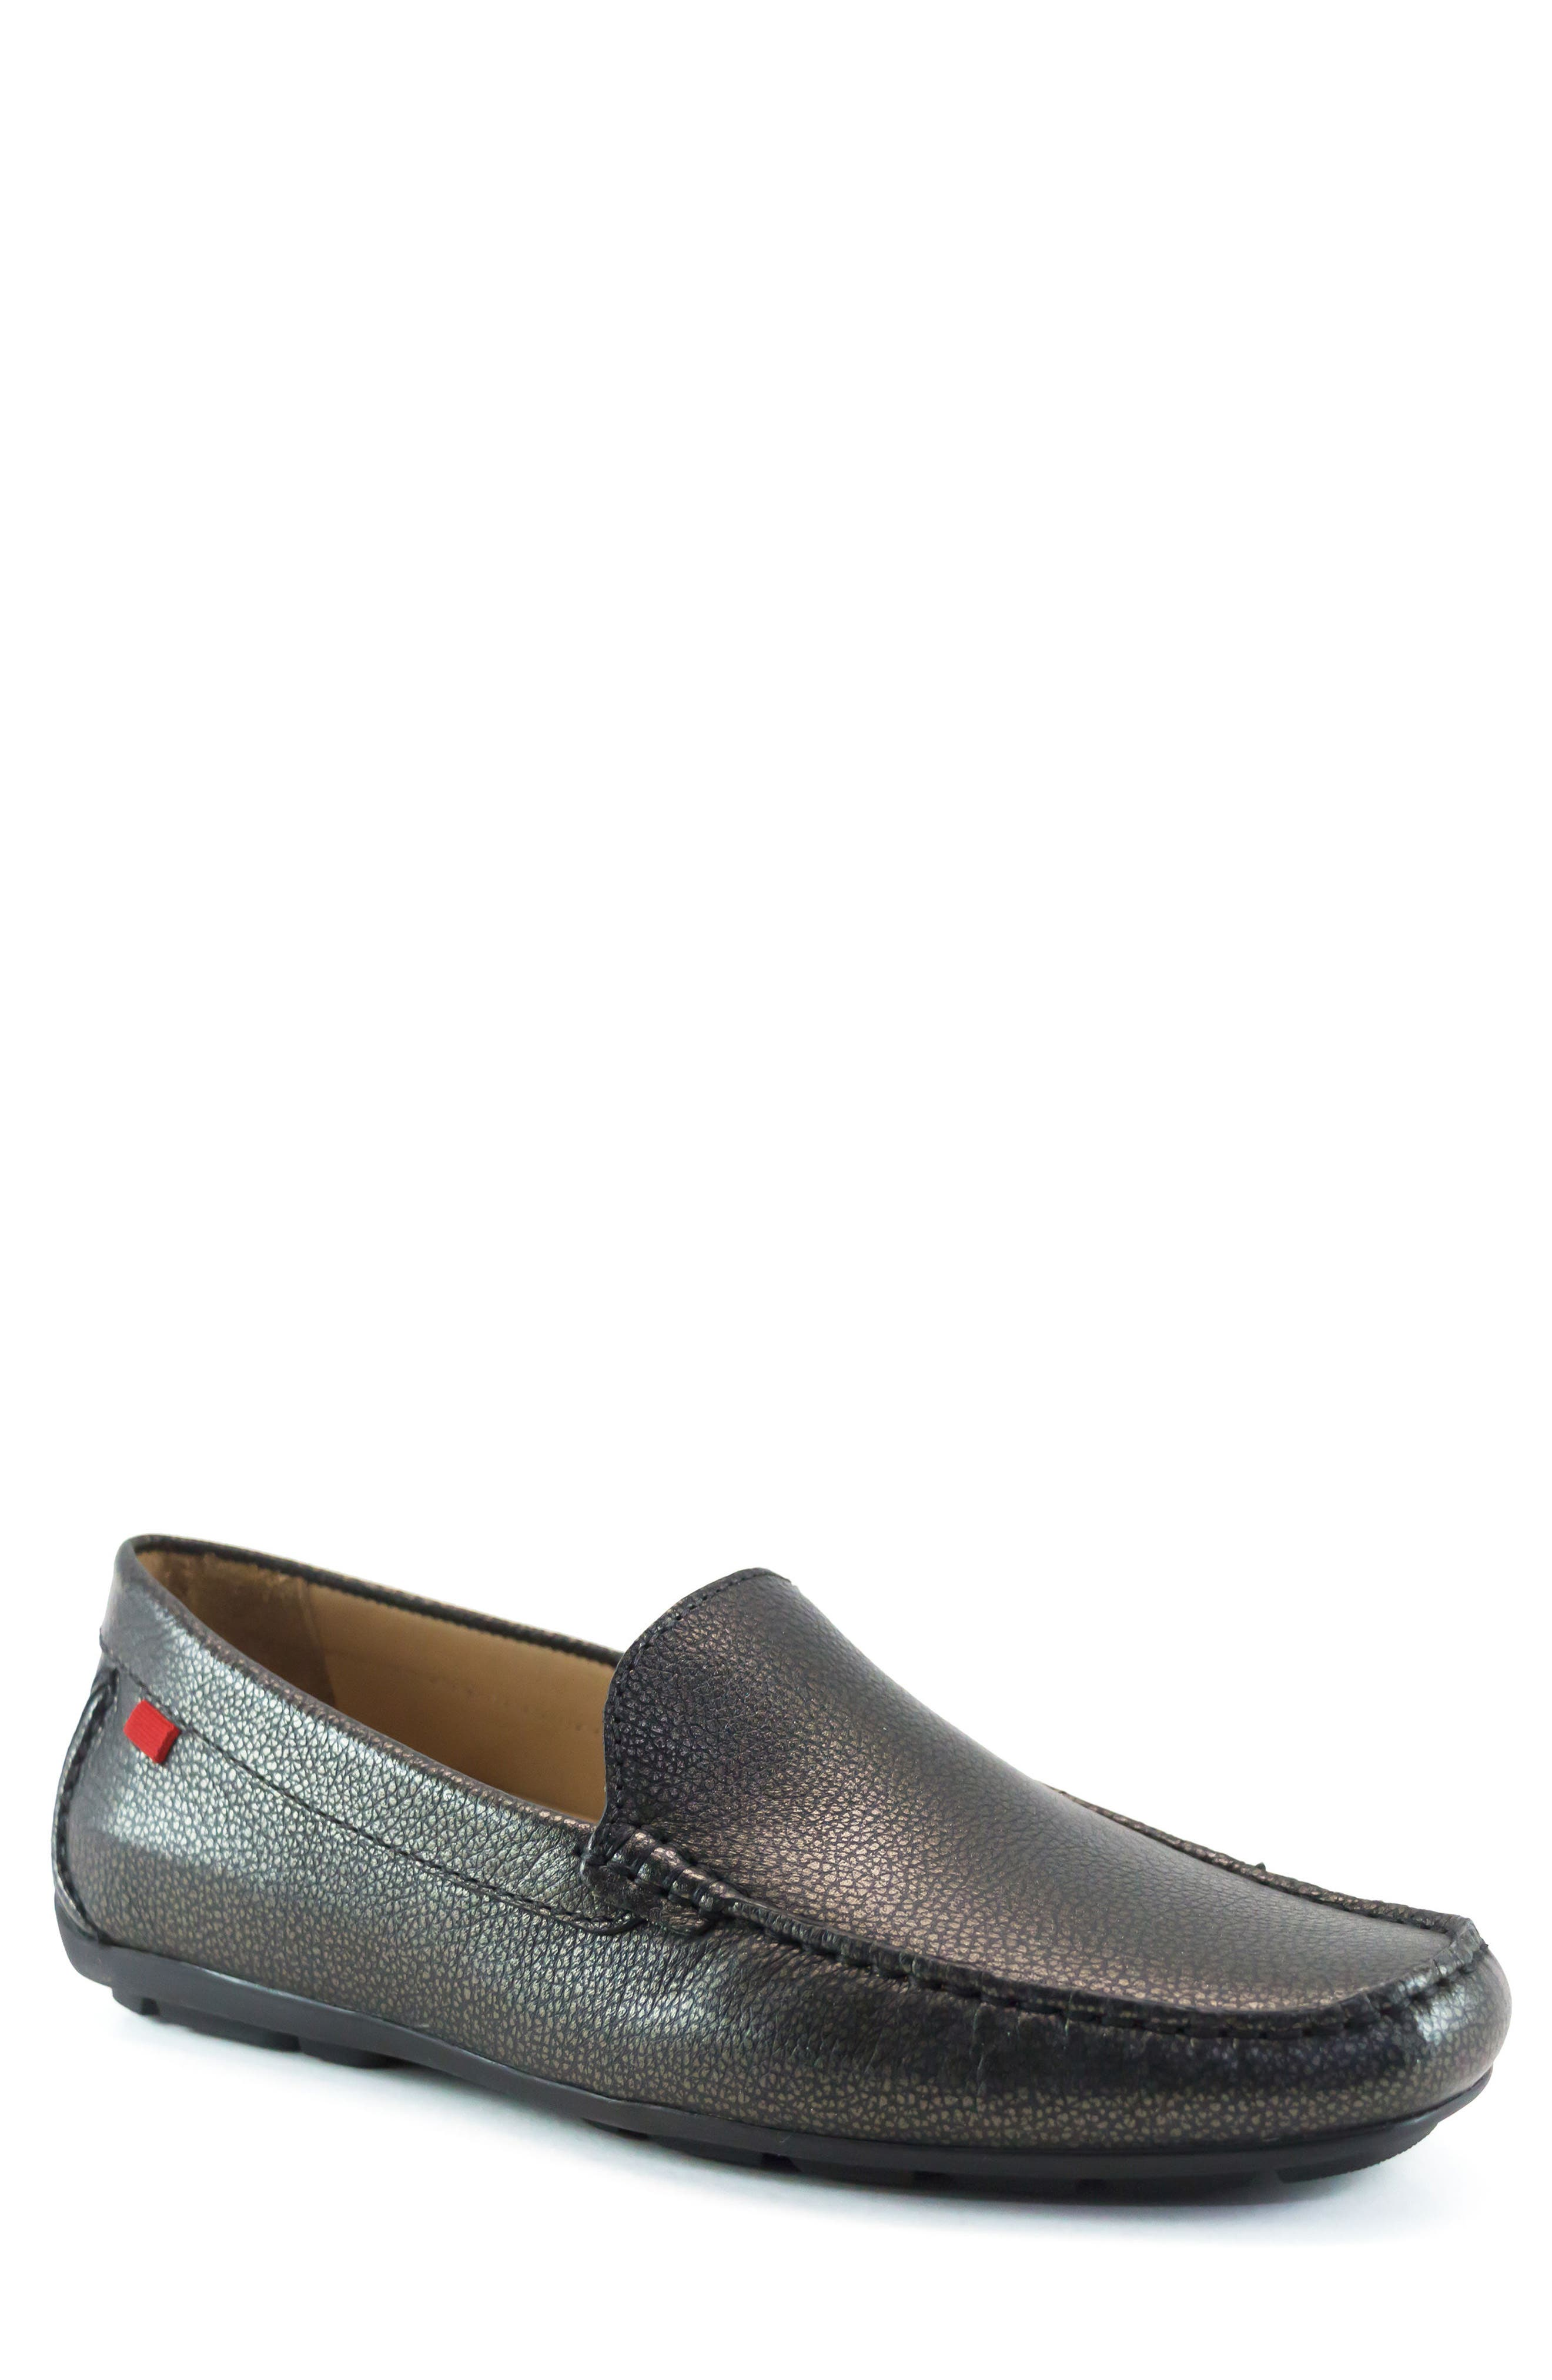 'Broadway' Driving Shoe,                         Main,                         color, 001